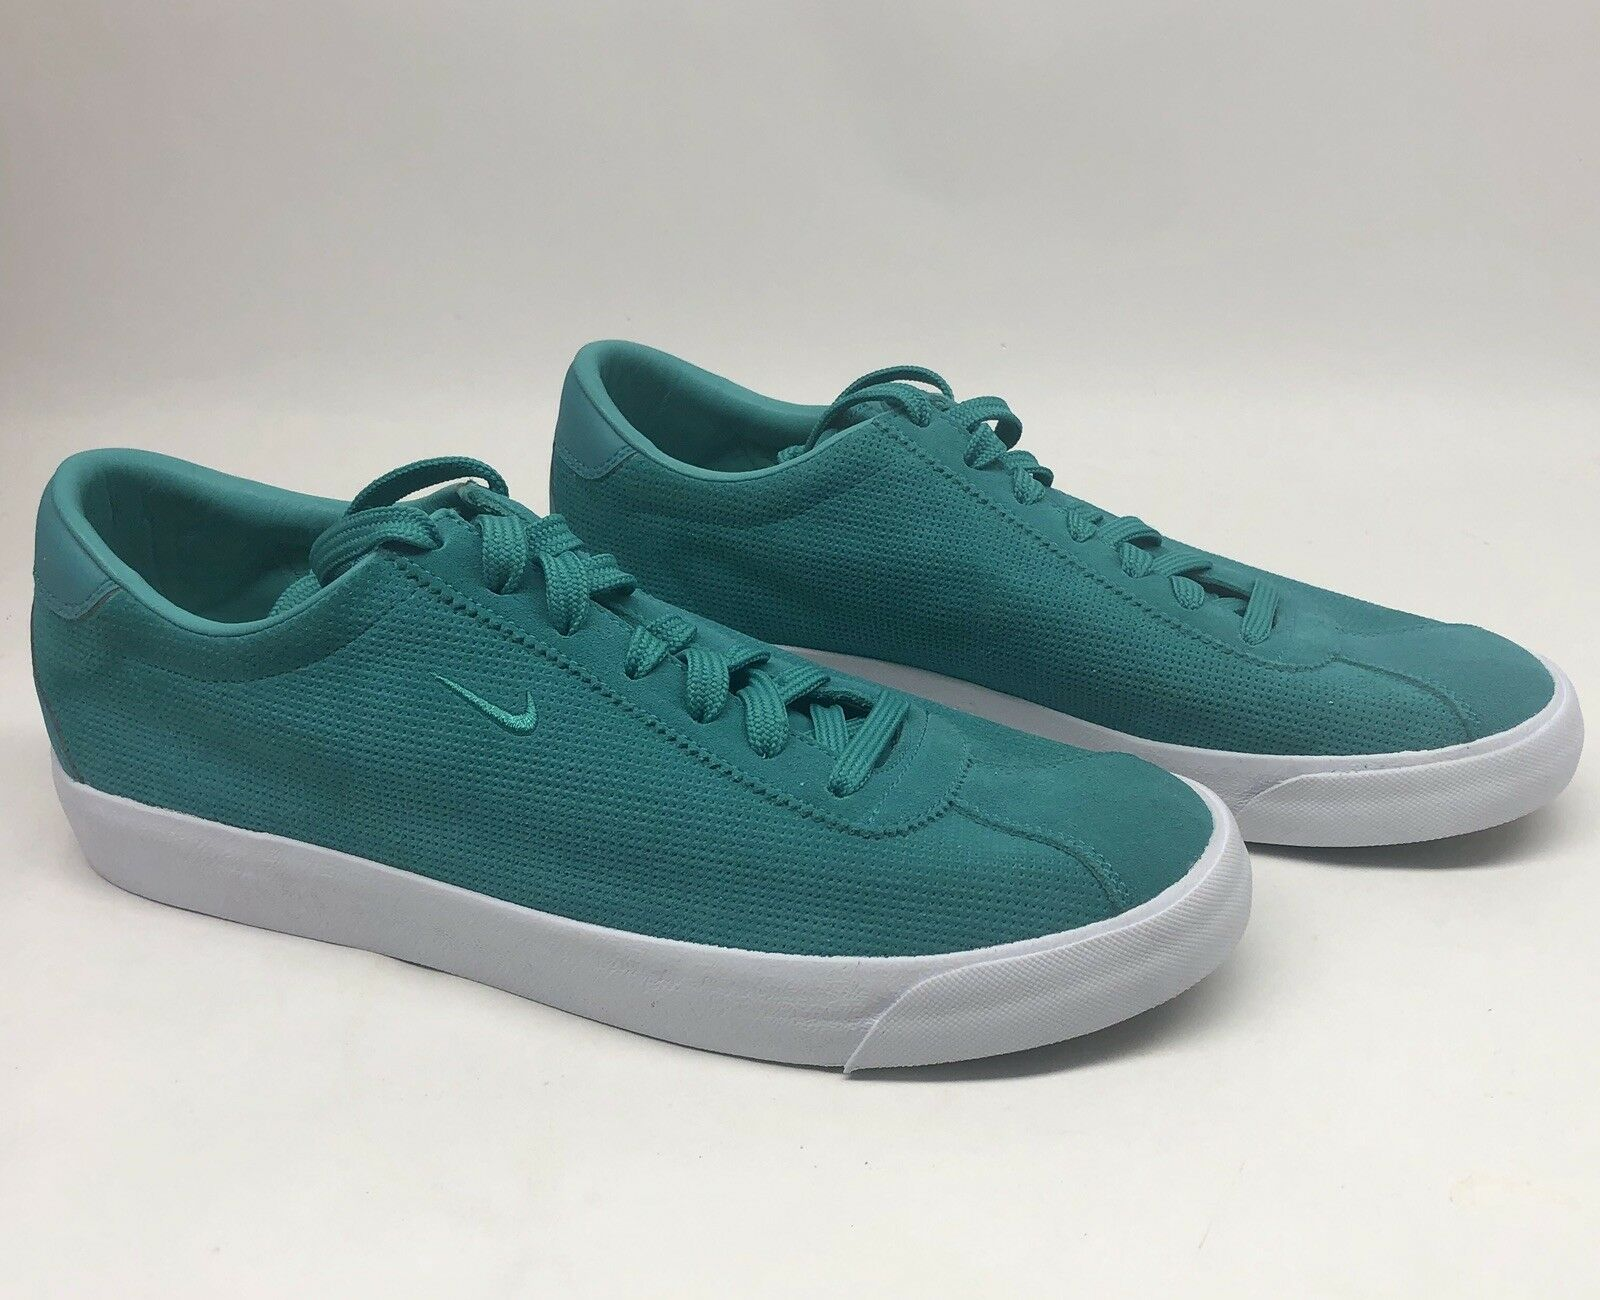 Nike Match Classic Suede Men's shoes Nikelab Clear Jade SIZE 10